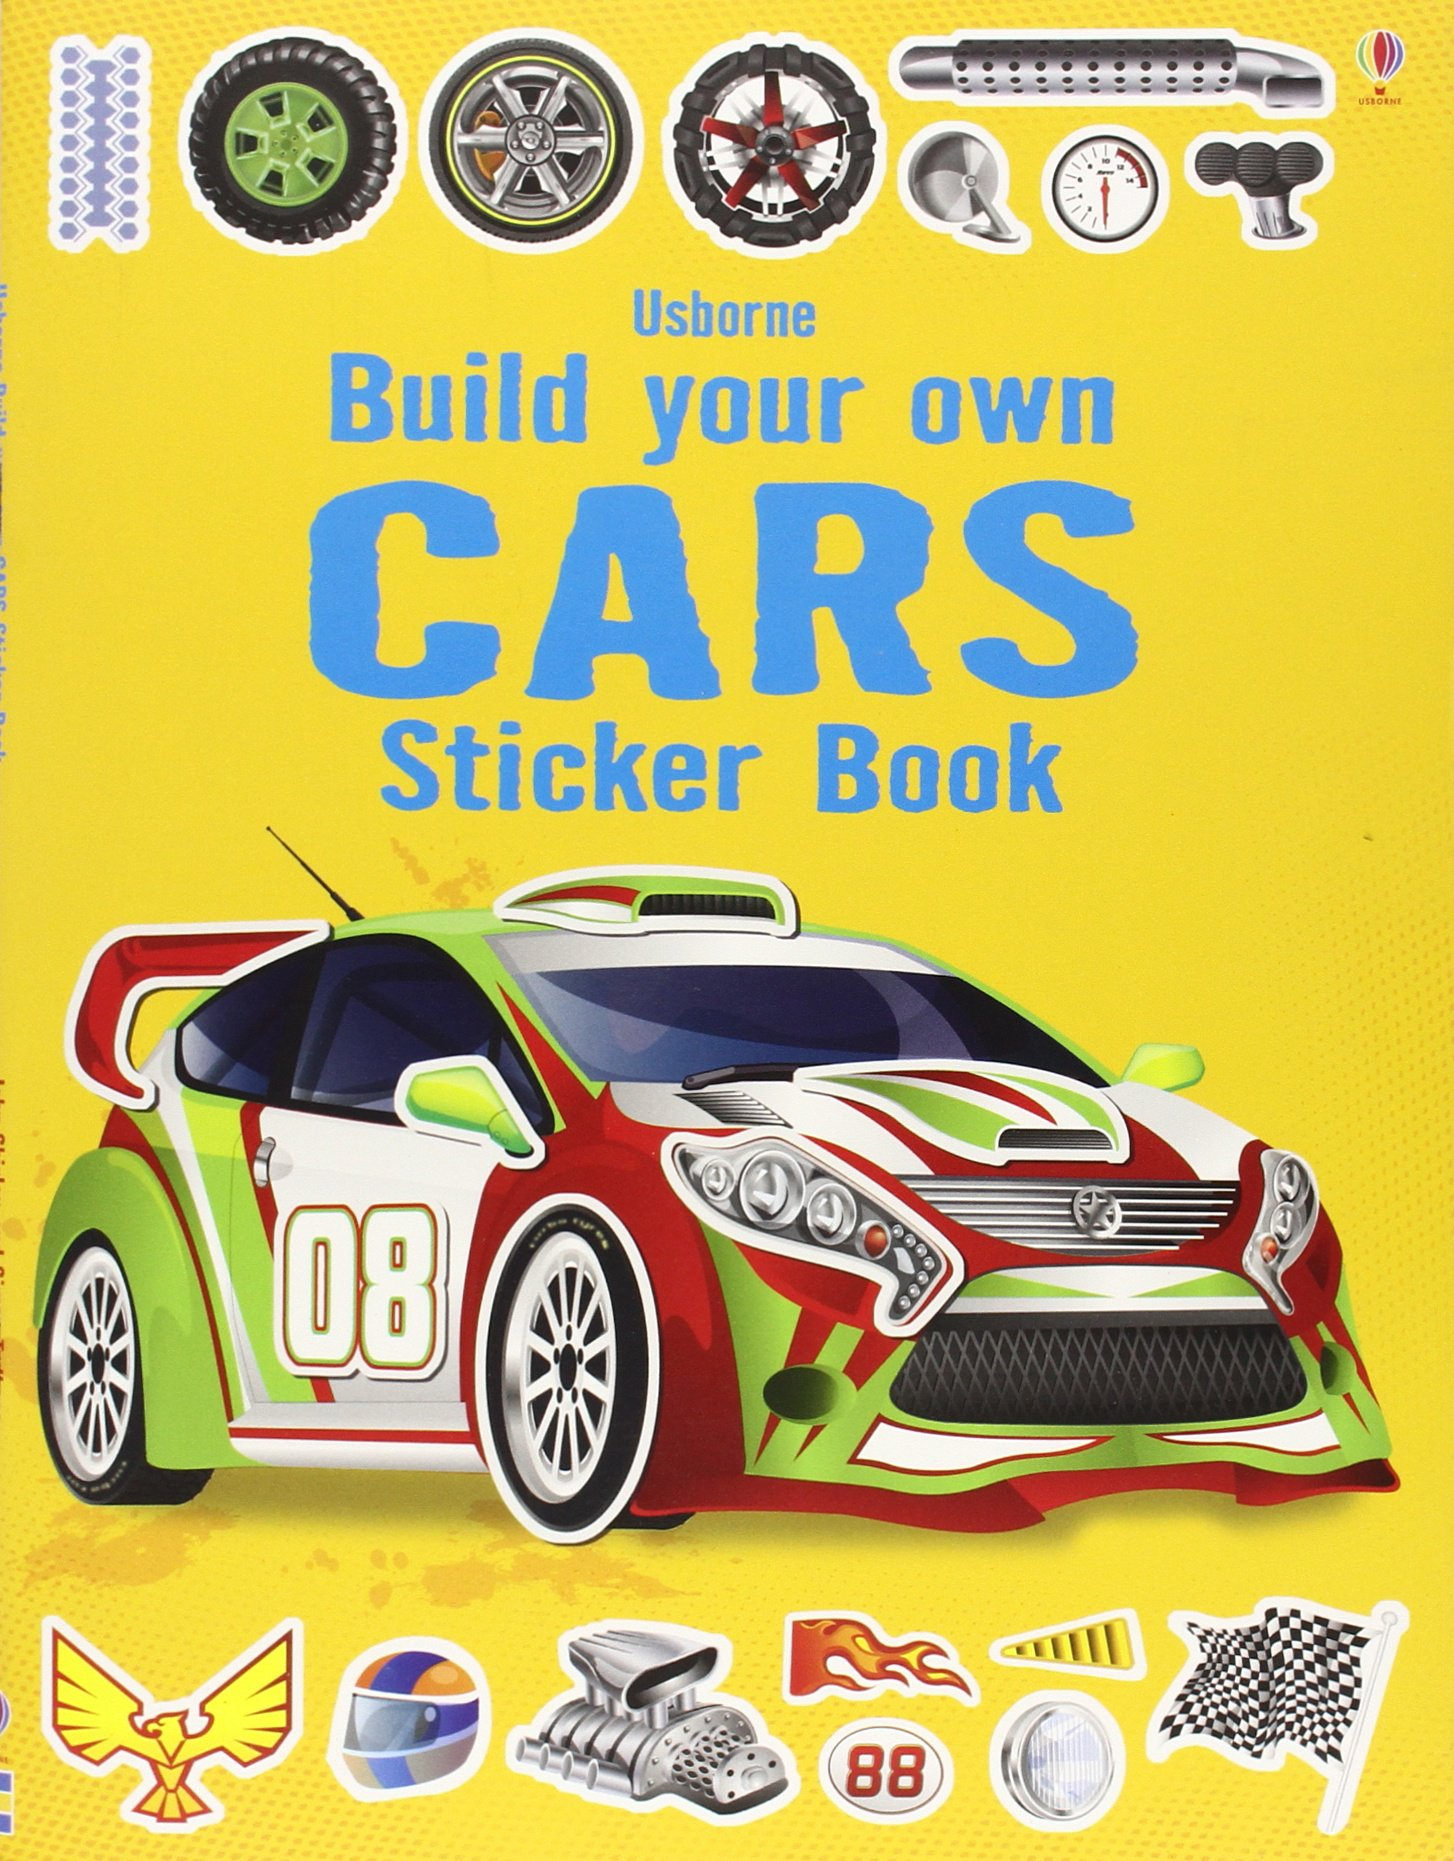 Car stickers design your own - Build Your Own Cars Sticker Book Simon Tudhope 9781409555384 Amazon Com Books